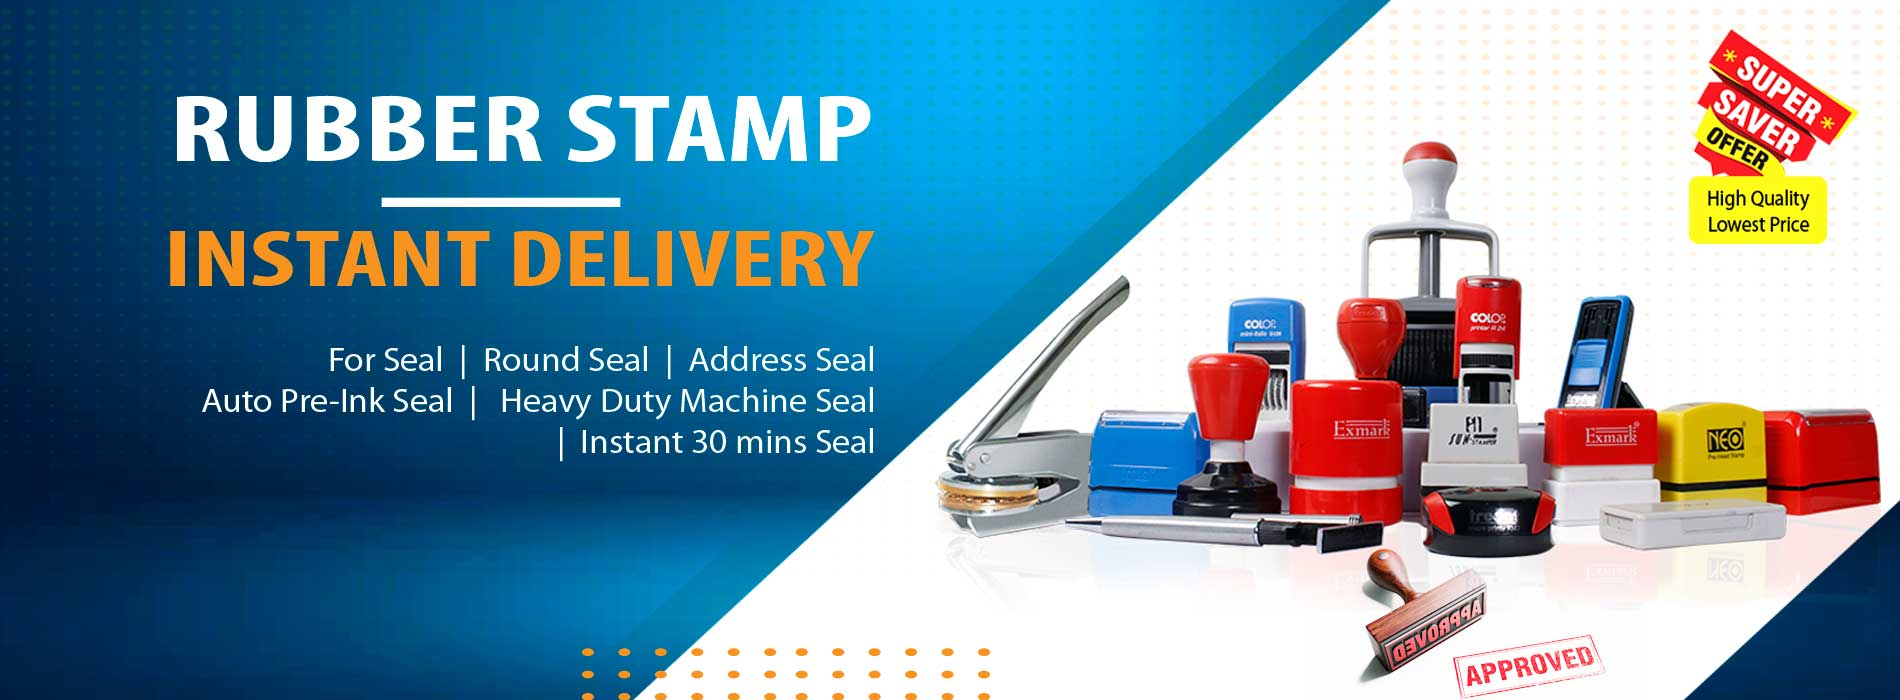 4 Rubber Stamp